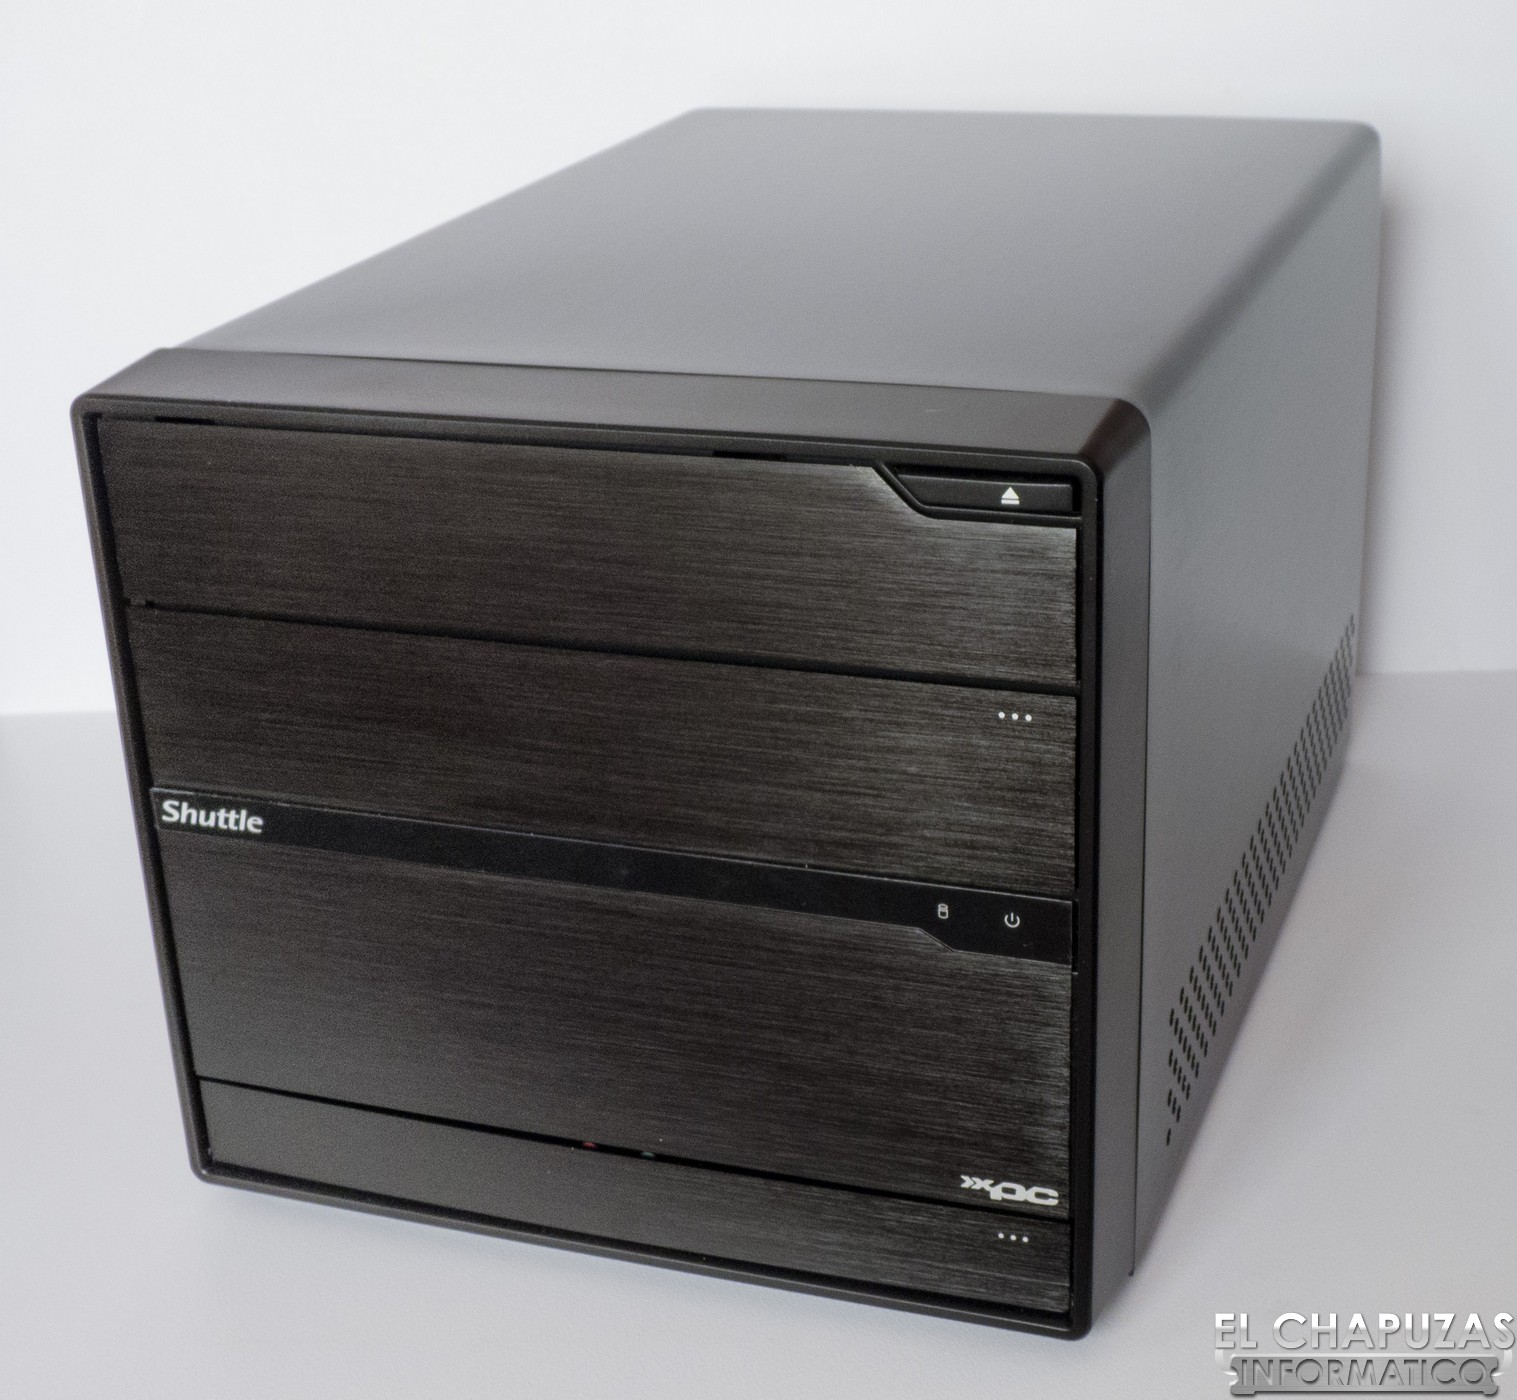 Review: Shuttle XPC Barebone SZ68R5